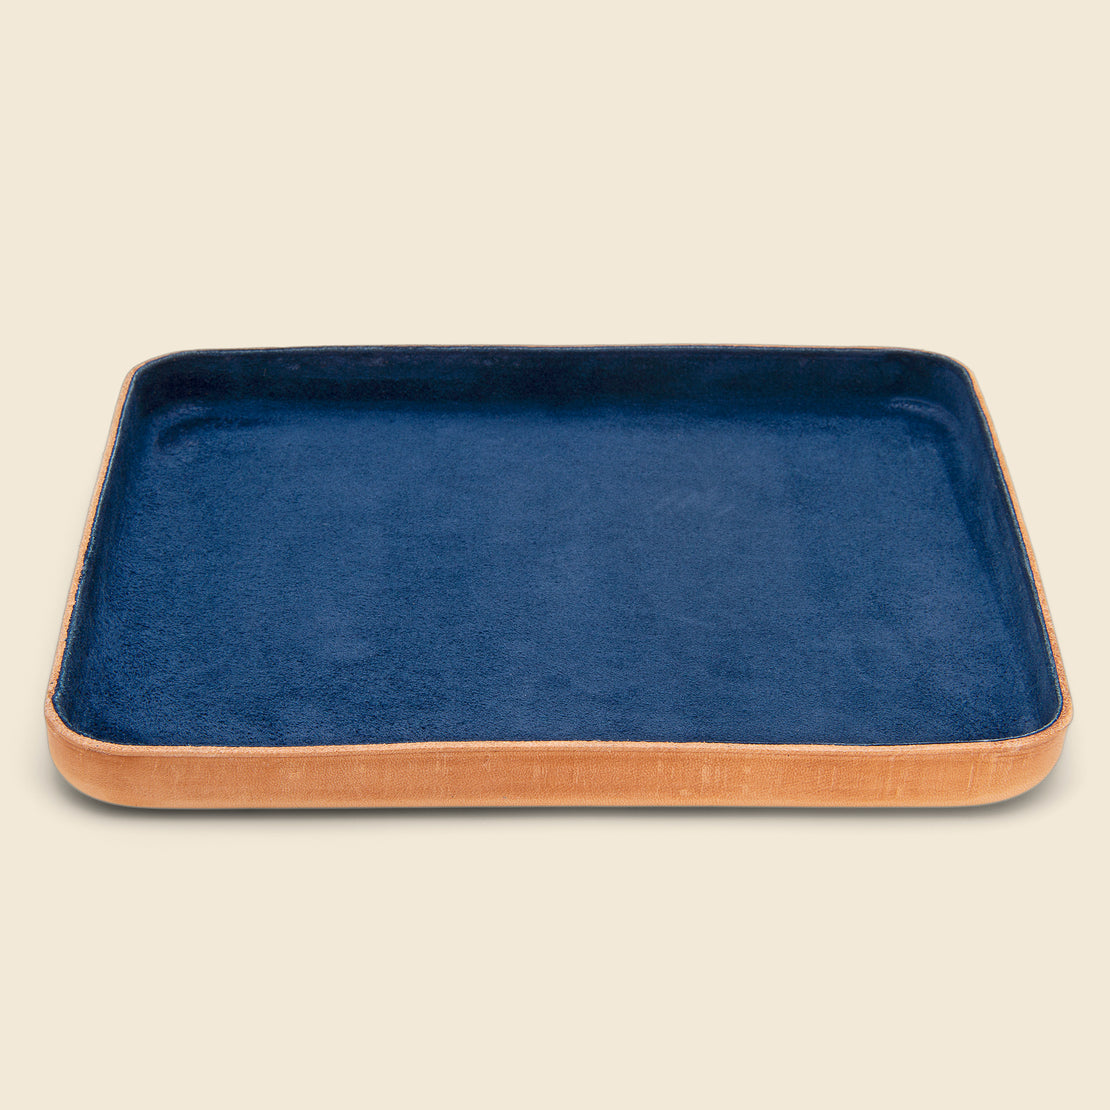 Home Large Leather Tray - Navy